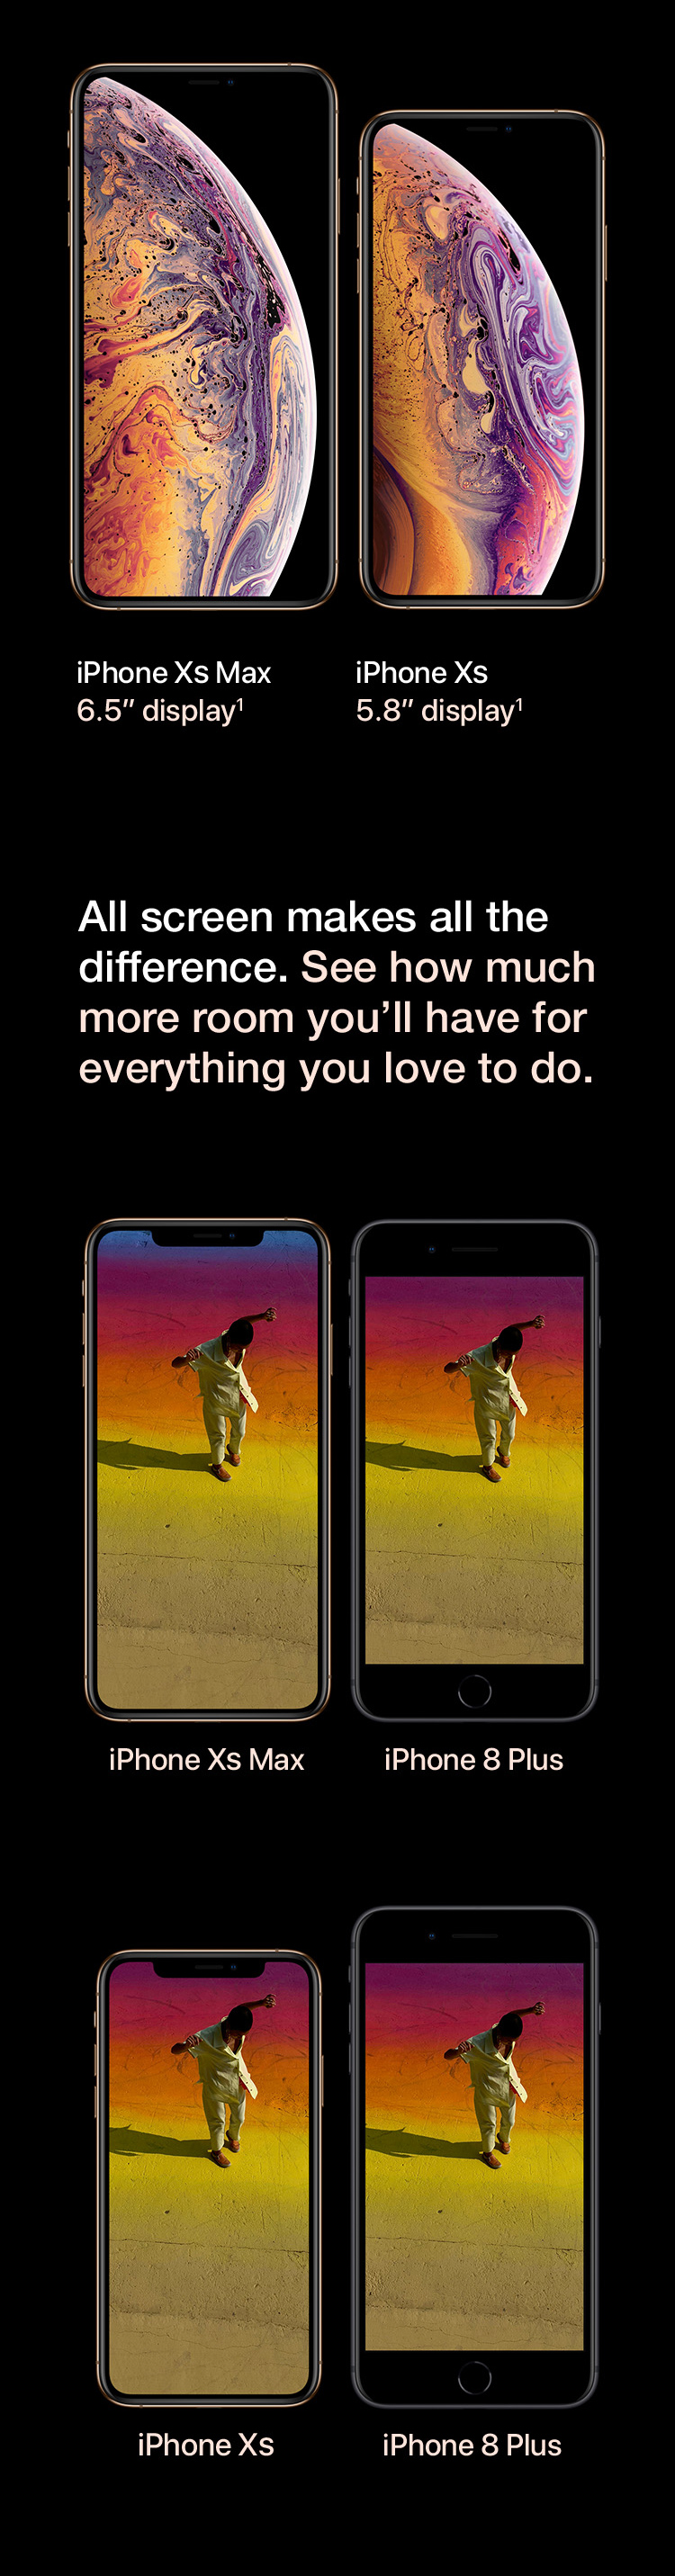 iPhone Xs - All screen display